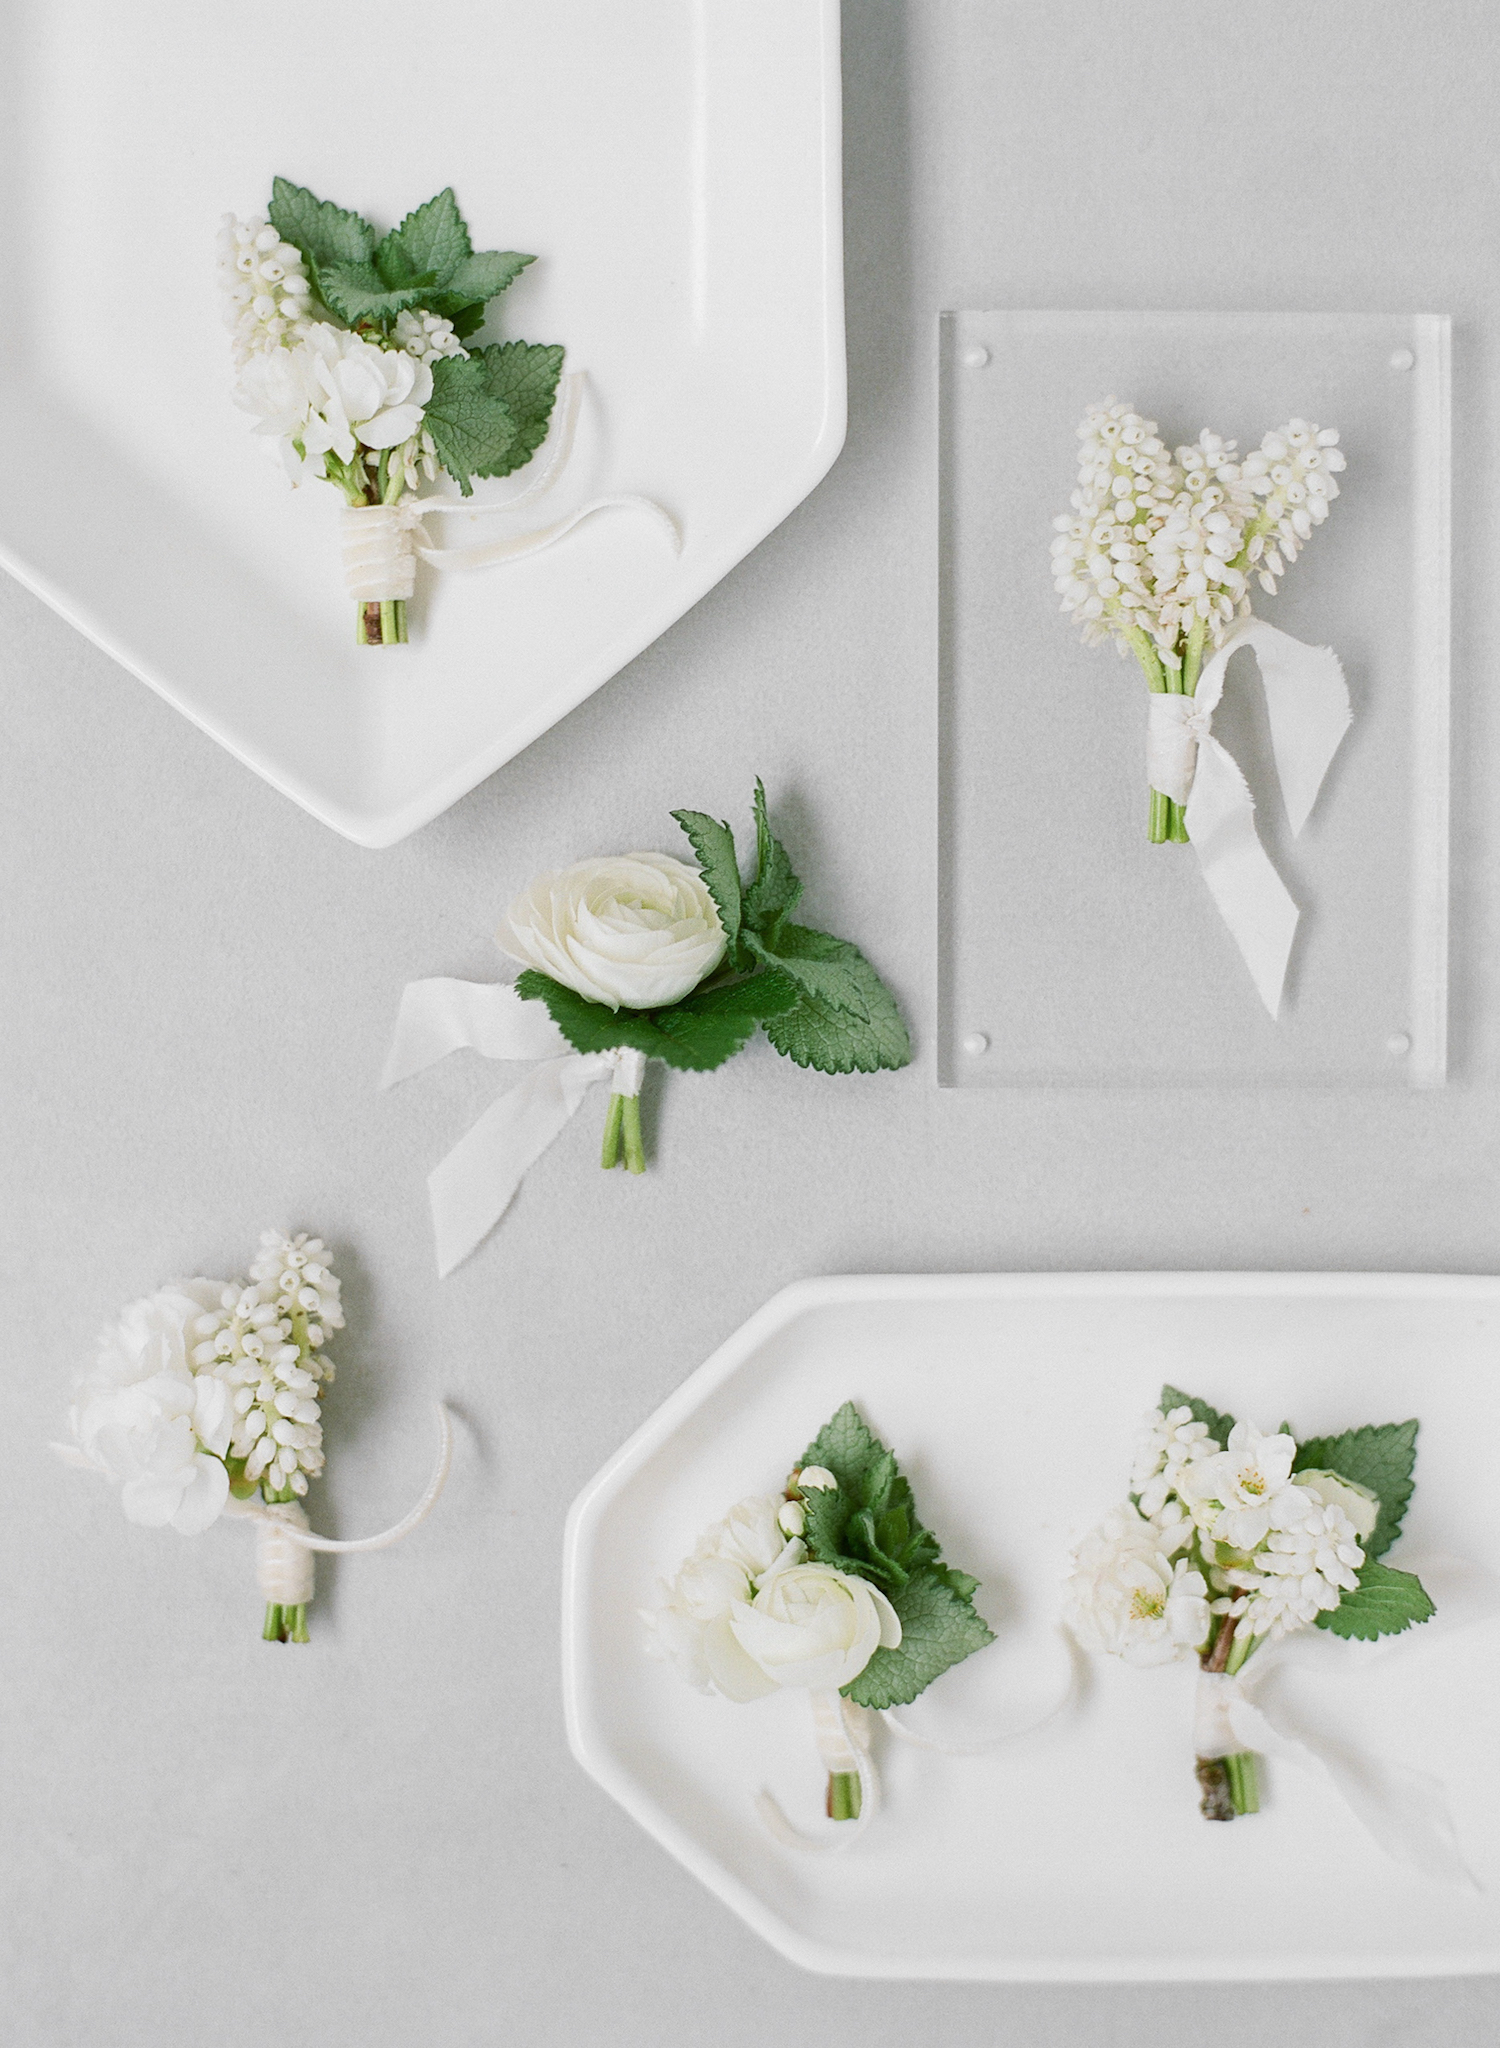 Wild Bloom Floral -Rebecca Yale Photography - Simply by Tamra Nicole - The KNOT - Editorial - Defining Details - White Wedding 6.jpeg